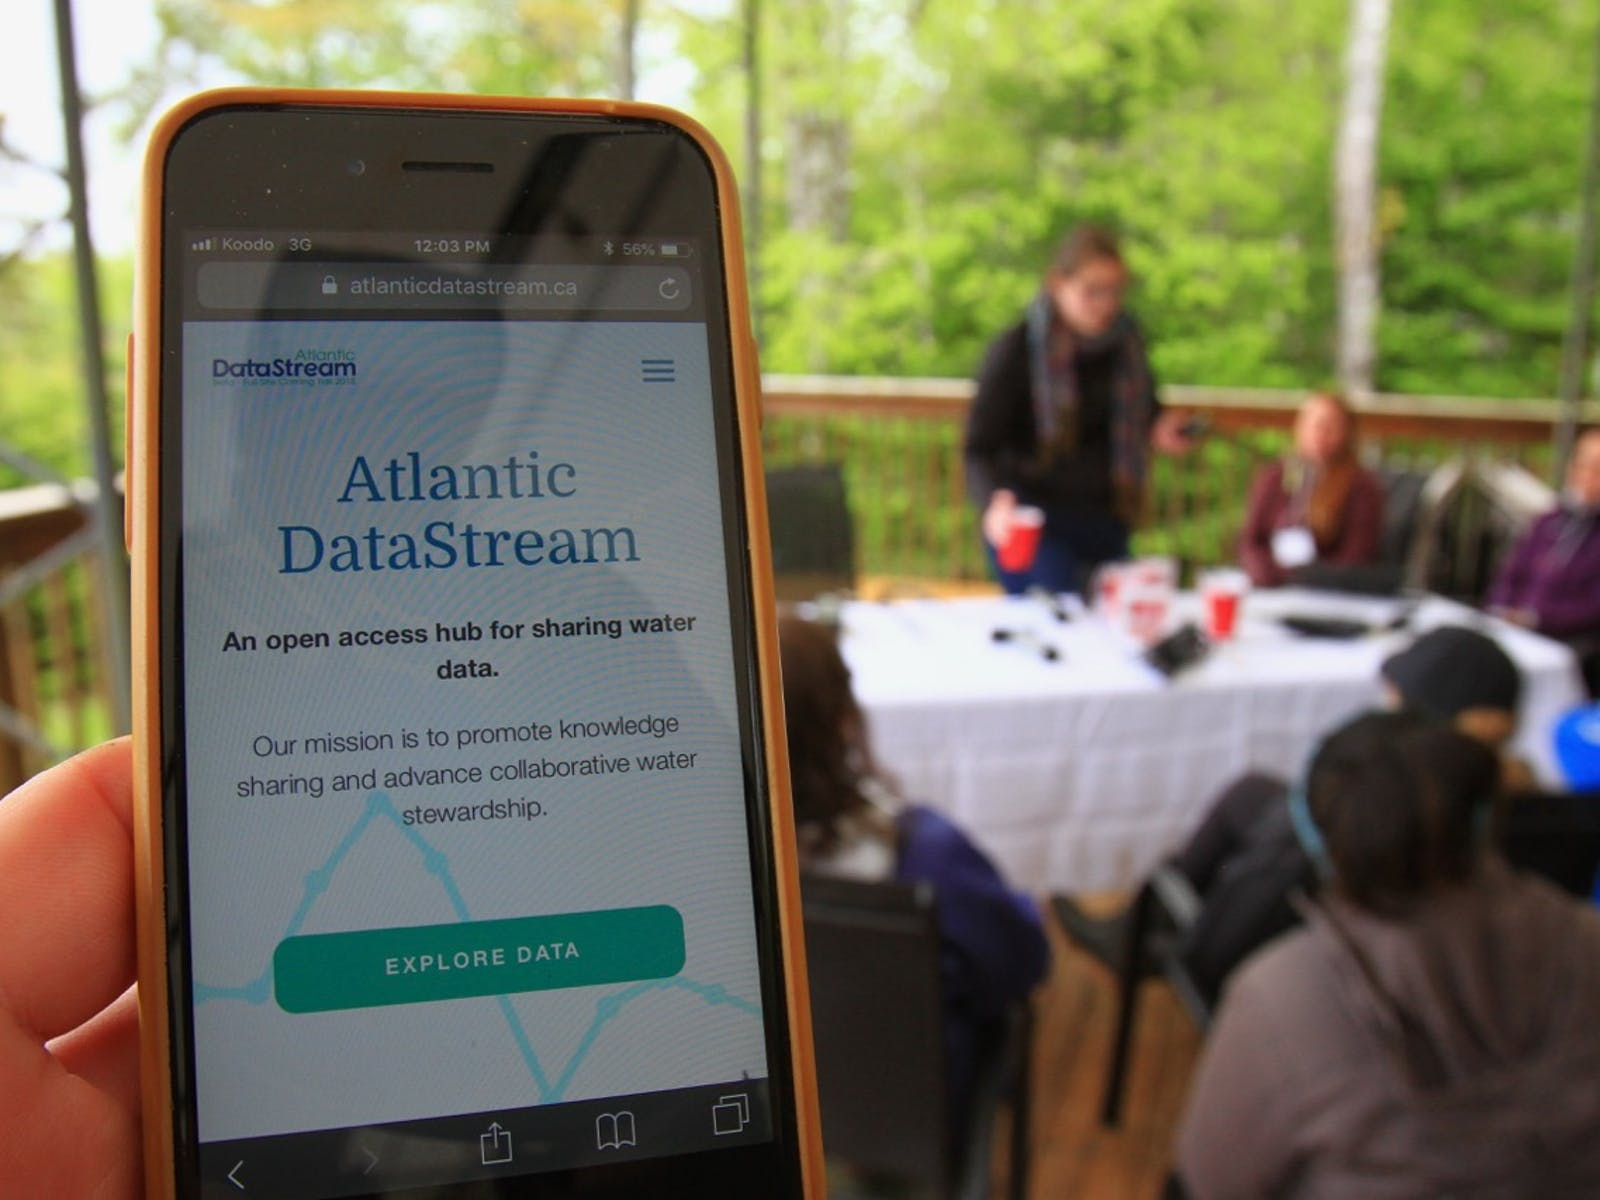 Iphone displaying the Atlantic DataStream homepage with people on a deck around a table in the background